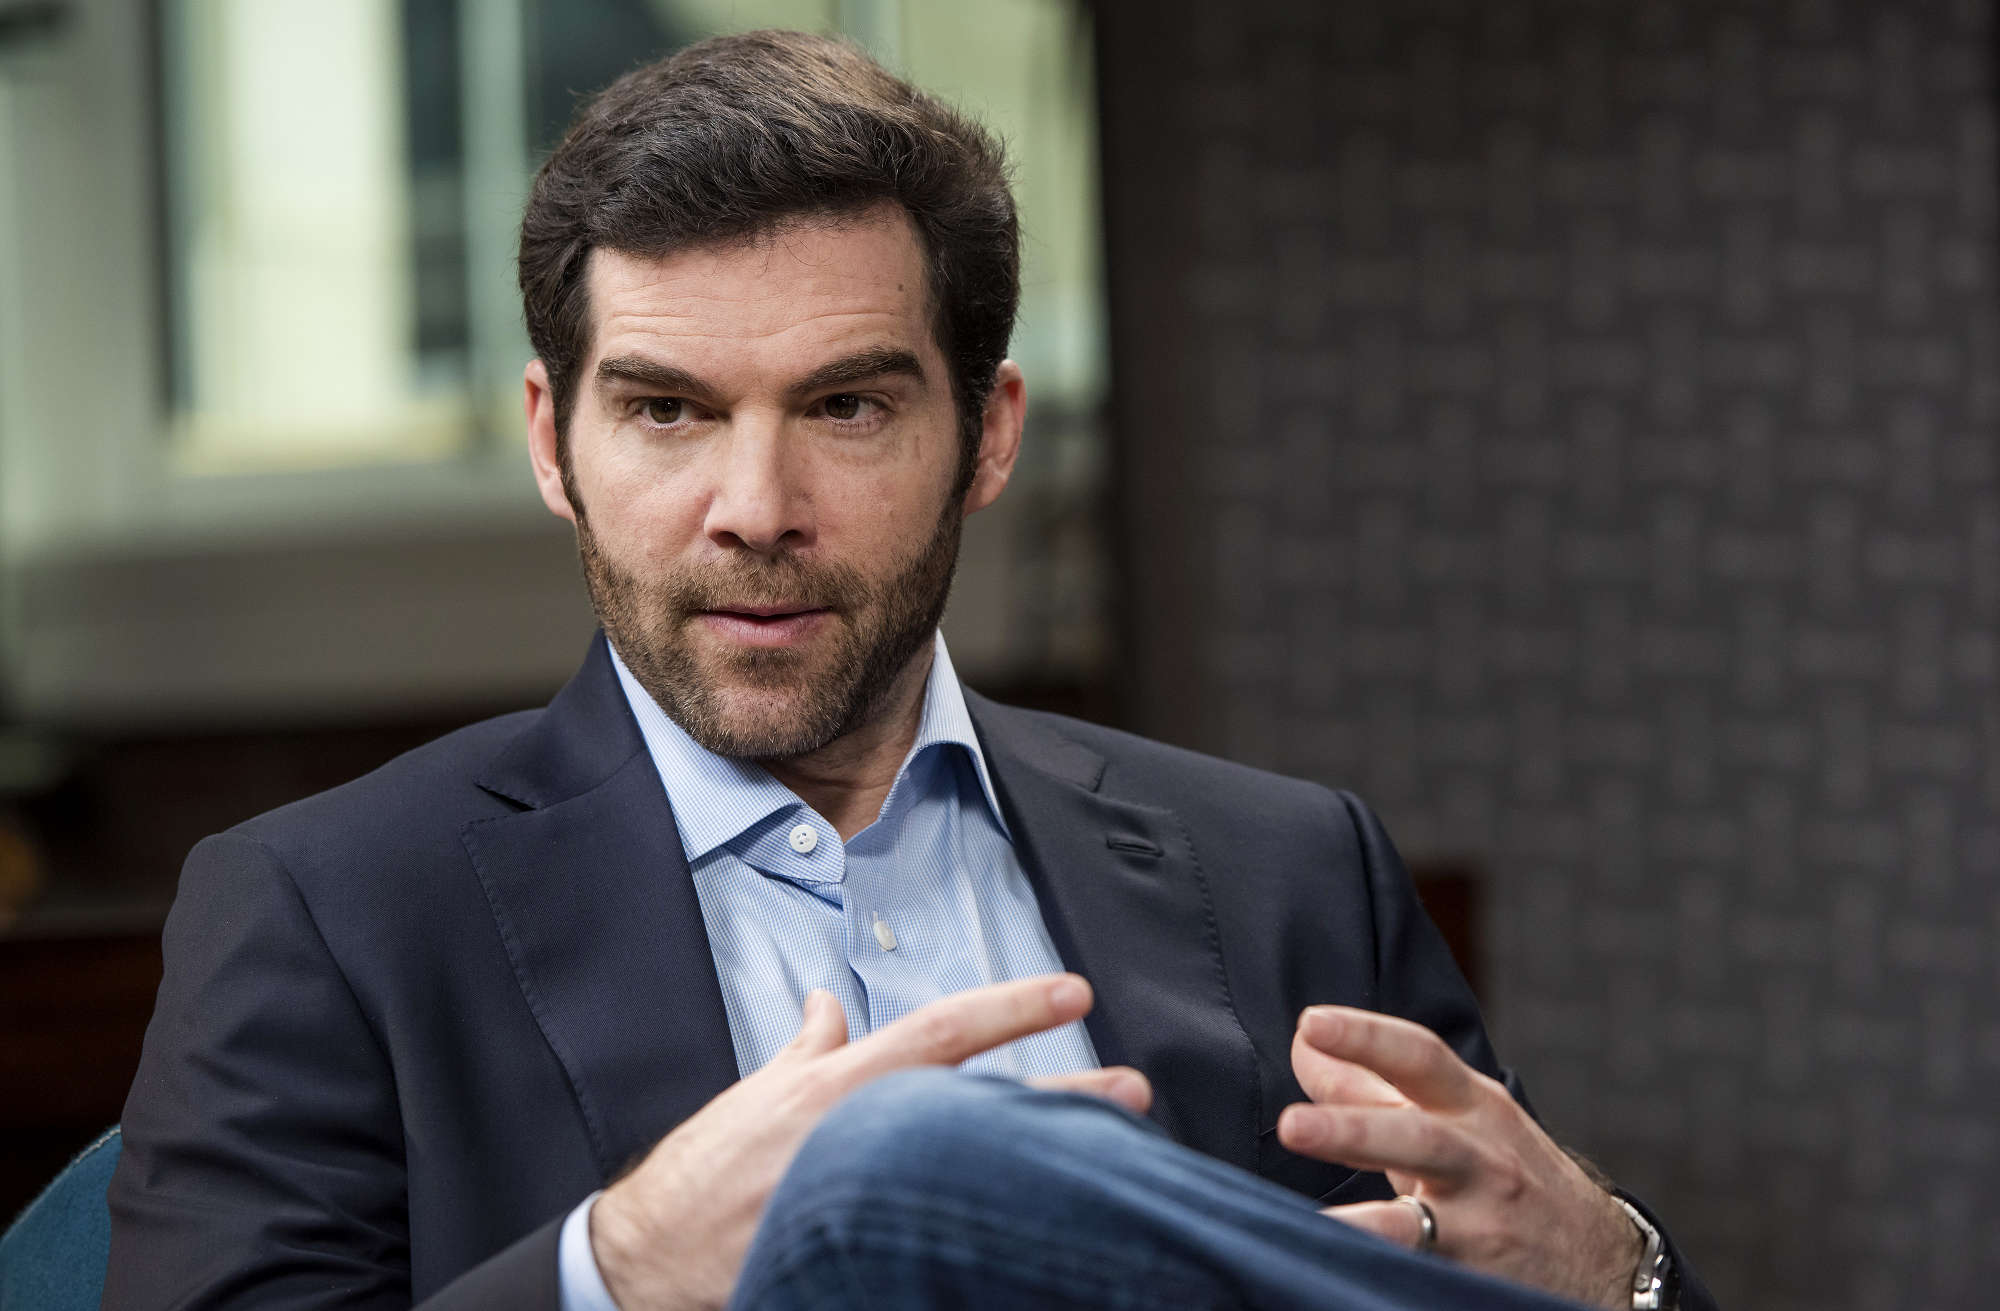 LinkedIn's Jeff Weiner Q&A: What It's Like Being CEO on the Stock's Worst Day Ever